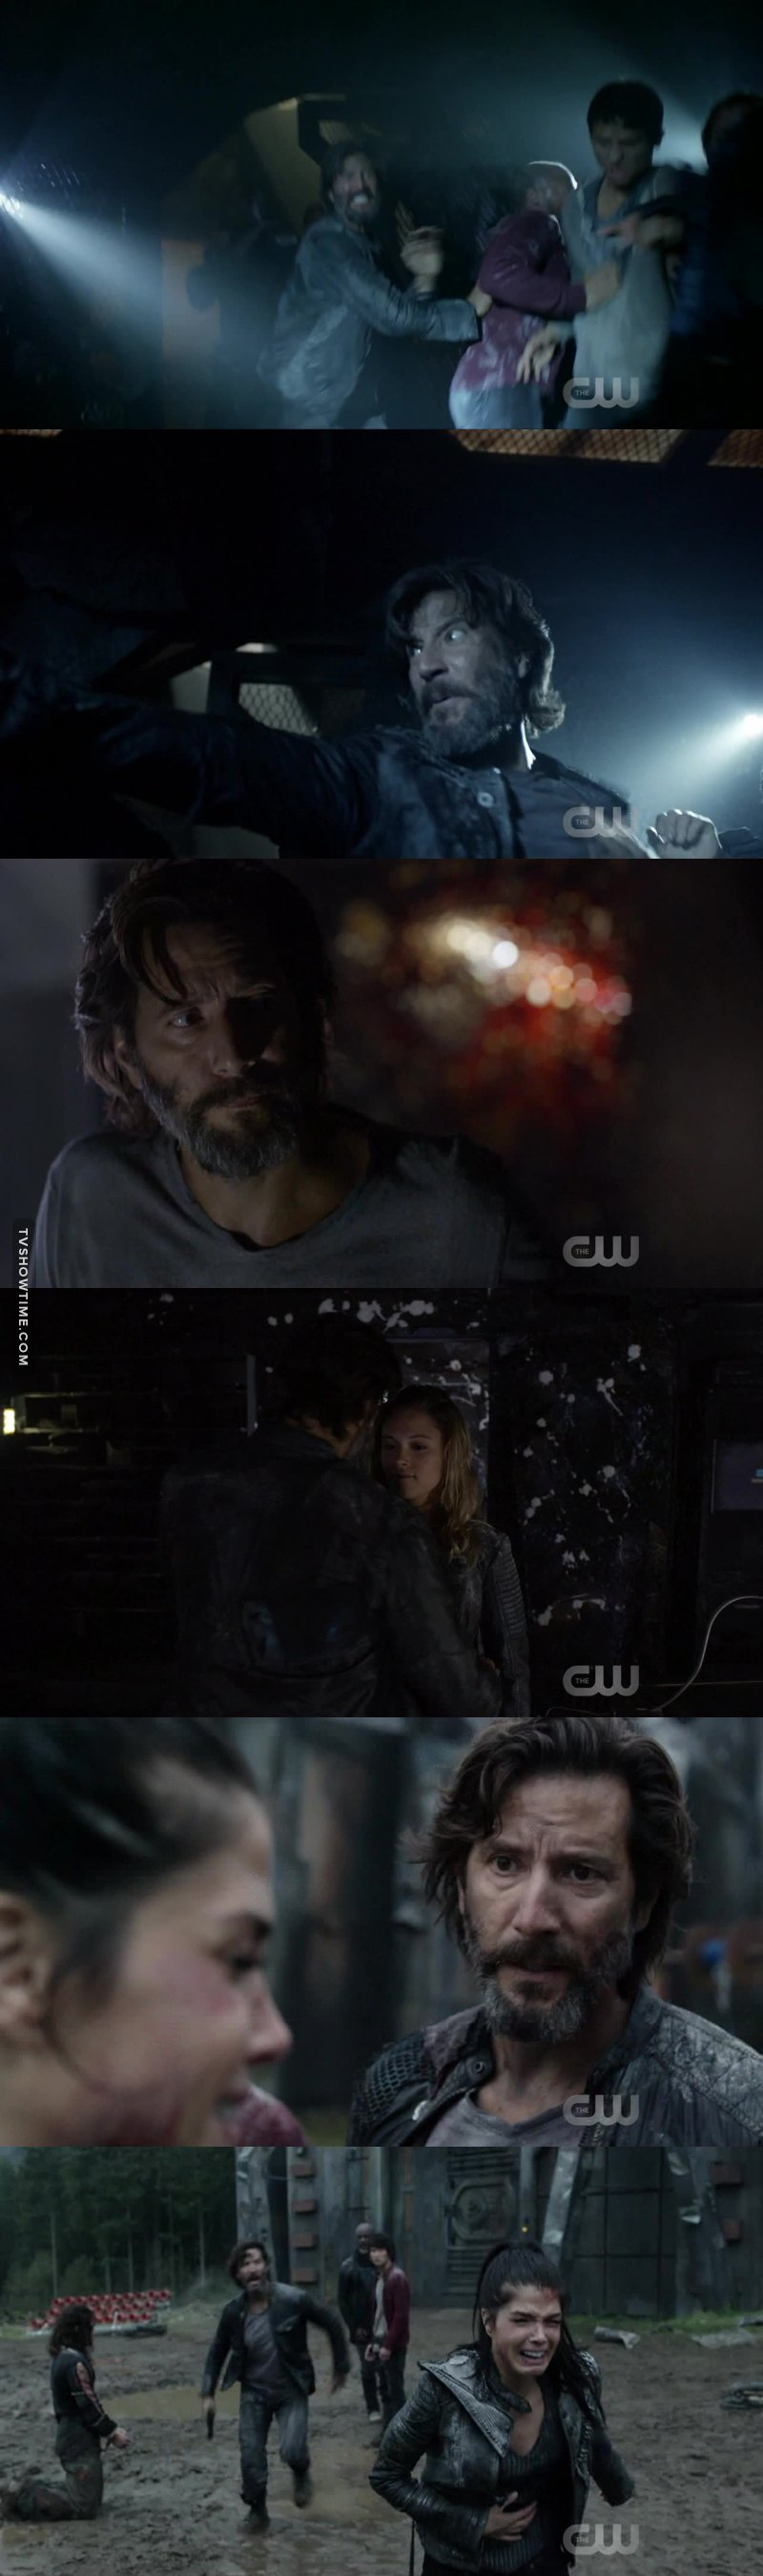 OMG Kane being a dad to EVERY FUCKING PERSON 😭😭 HOW CAN YOU NOT LOVE HIM. He won't ever replace Clarke's dad or anyone else's, but still HE IS A FUCKING GREAT DAD ❤